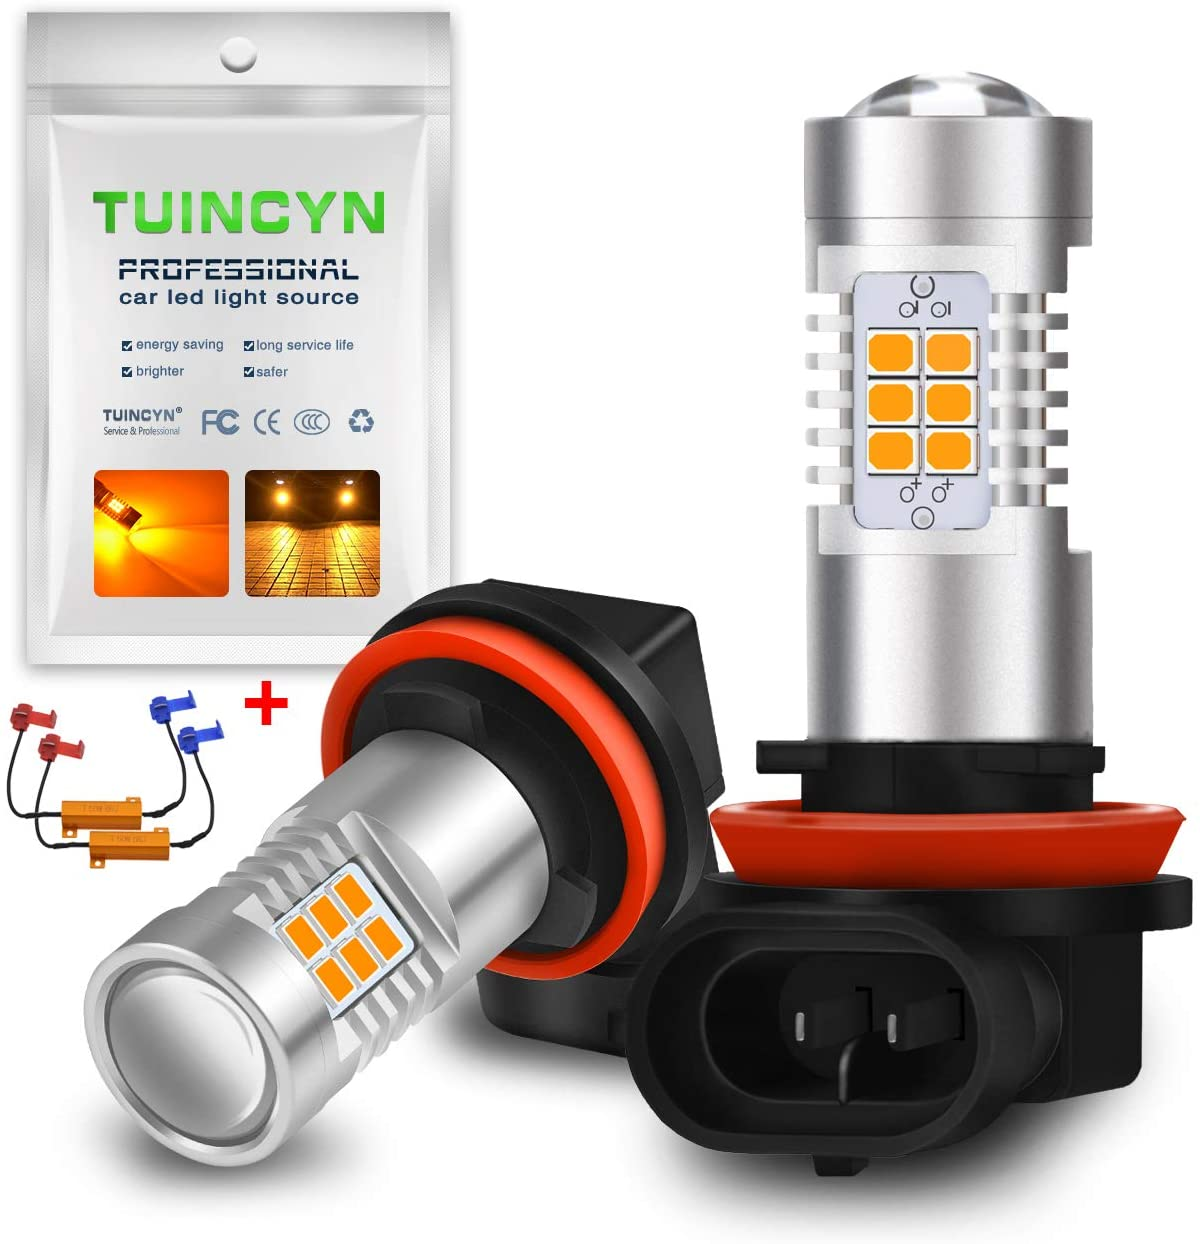 TUINCYN Amber H11 H8 LED Fog Light Bulb Canbus Error Free DRL Lamp Replacement 2835 21SMD 6500K Extremely Bright Led Car Driving Daytime Running Lights 10.5W DC 12V (2-Pack)